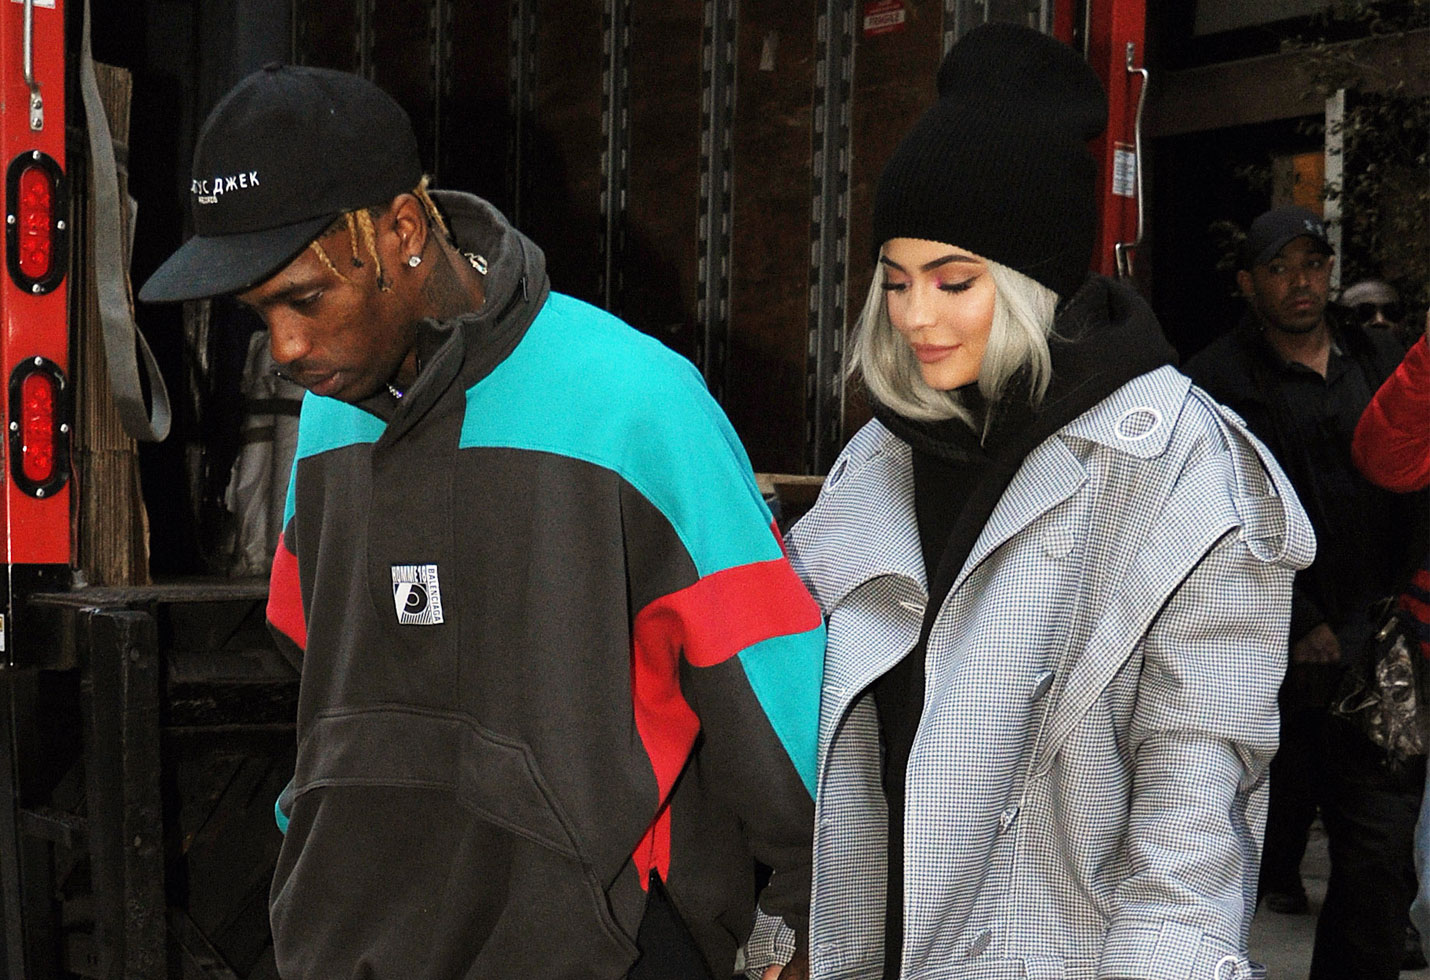 Kylie jenner travis scott roller coaster astroworld tour new york stormi